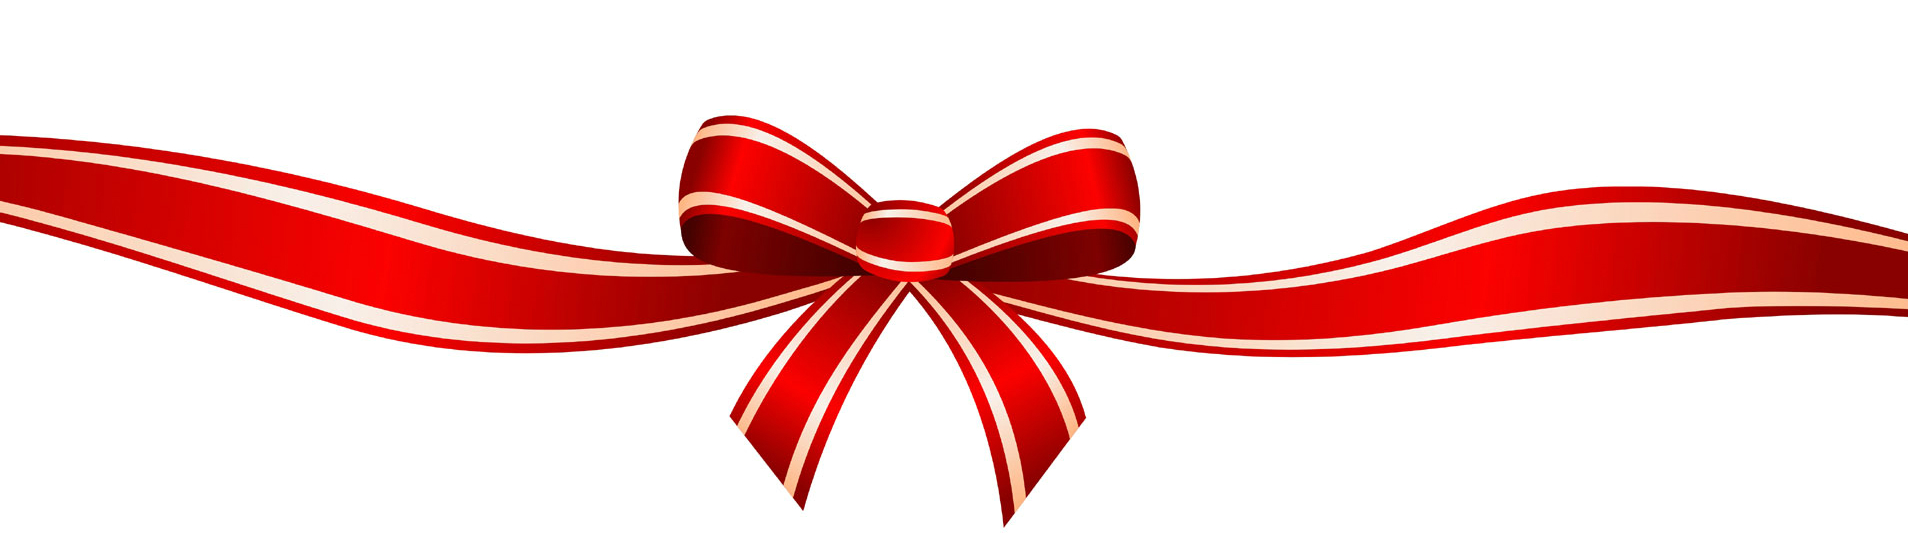 Free Christmas Ribbon Cliparts, Download Free Clip Art, Free.